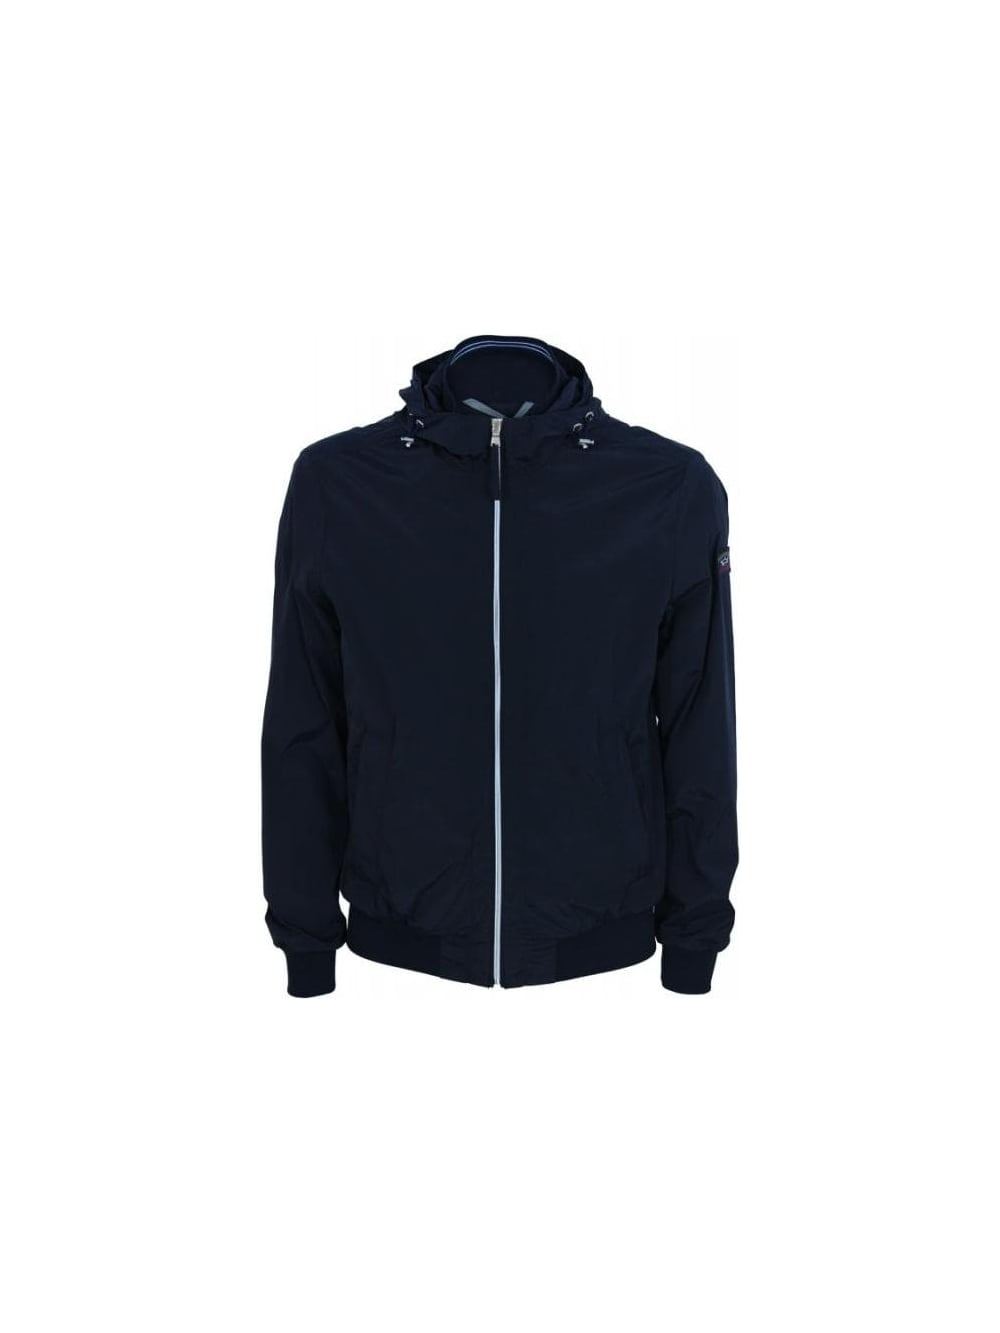 Paul   Shark Hooded Blouson in Navy - Northern Threads 021485a71344